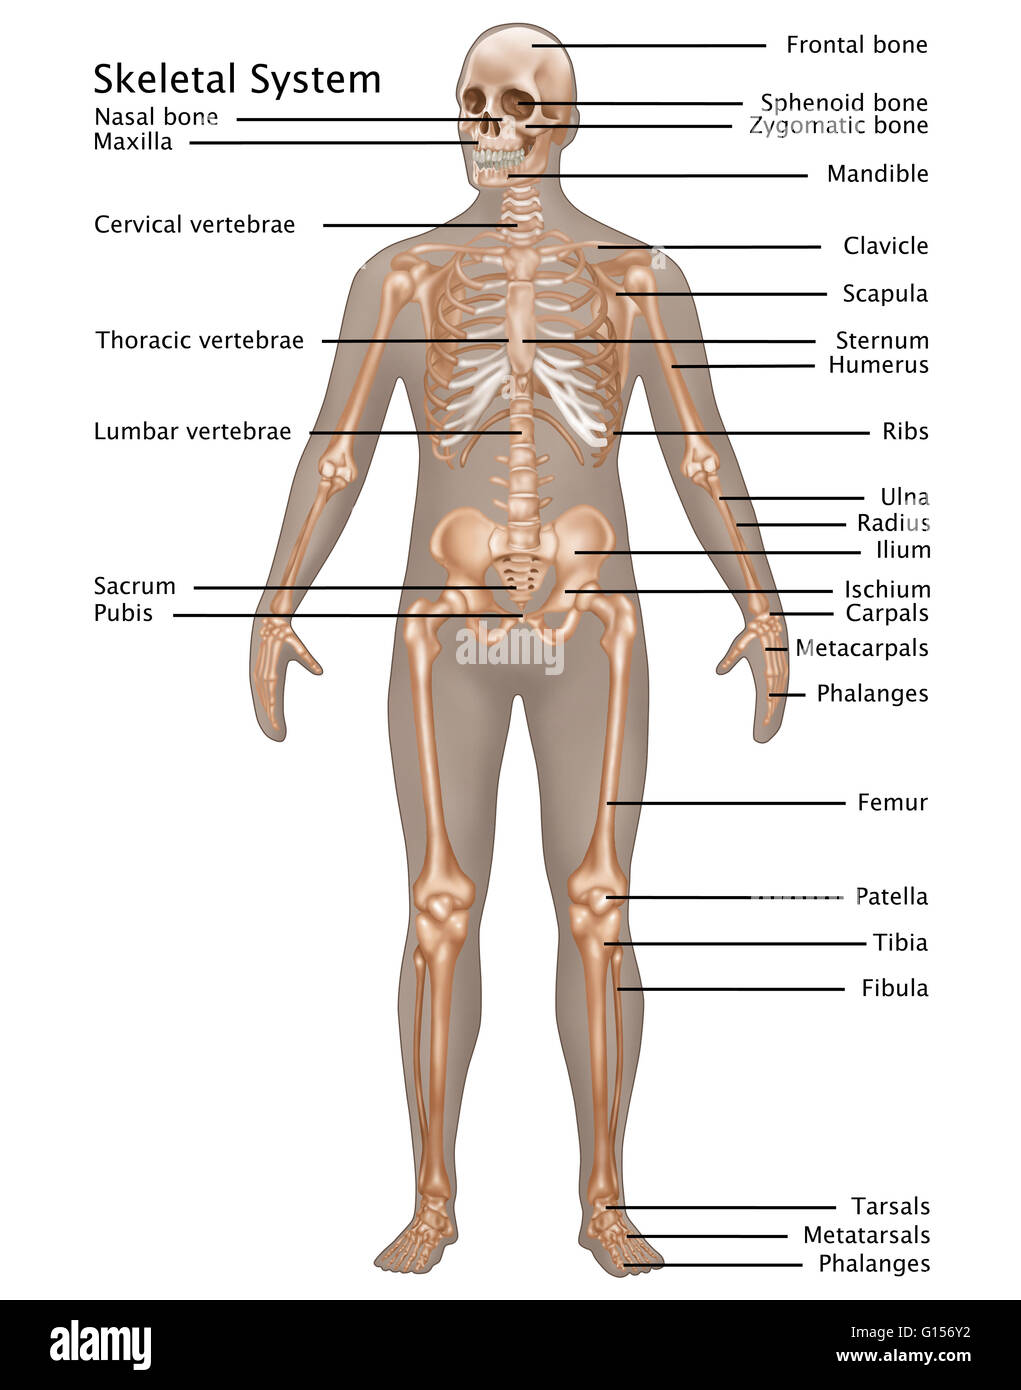 Illustration Of The Skeletal System In The Male Anatomy Stock Photo